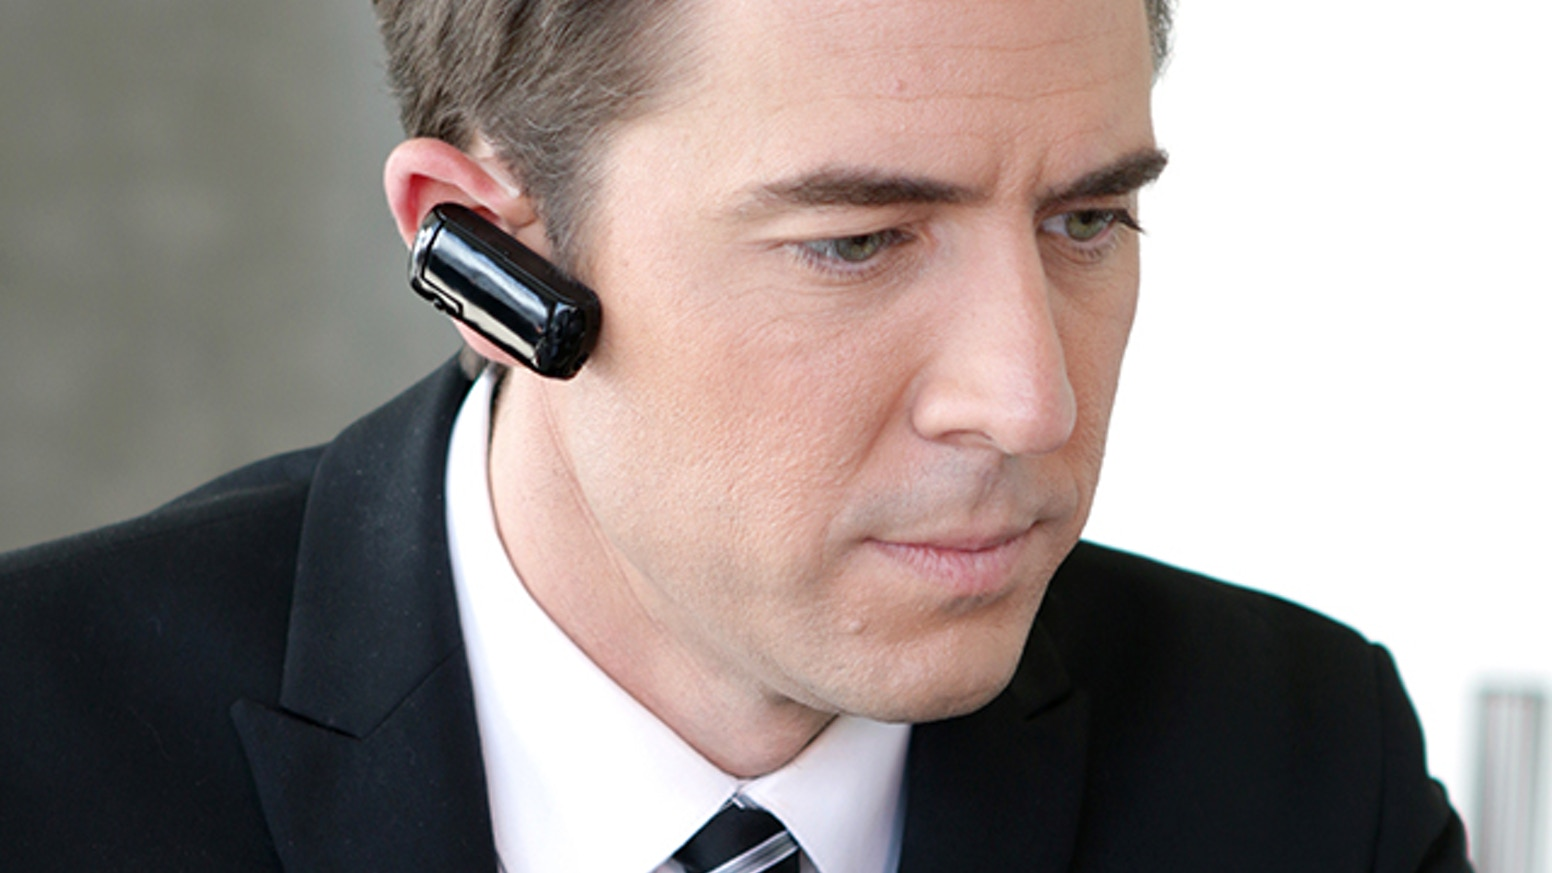 Use your Bluetooth headset to record automatically all your phone calls. Upload records to various cloud services.